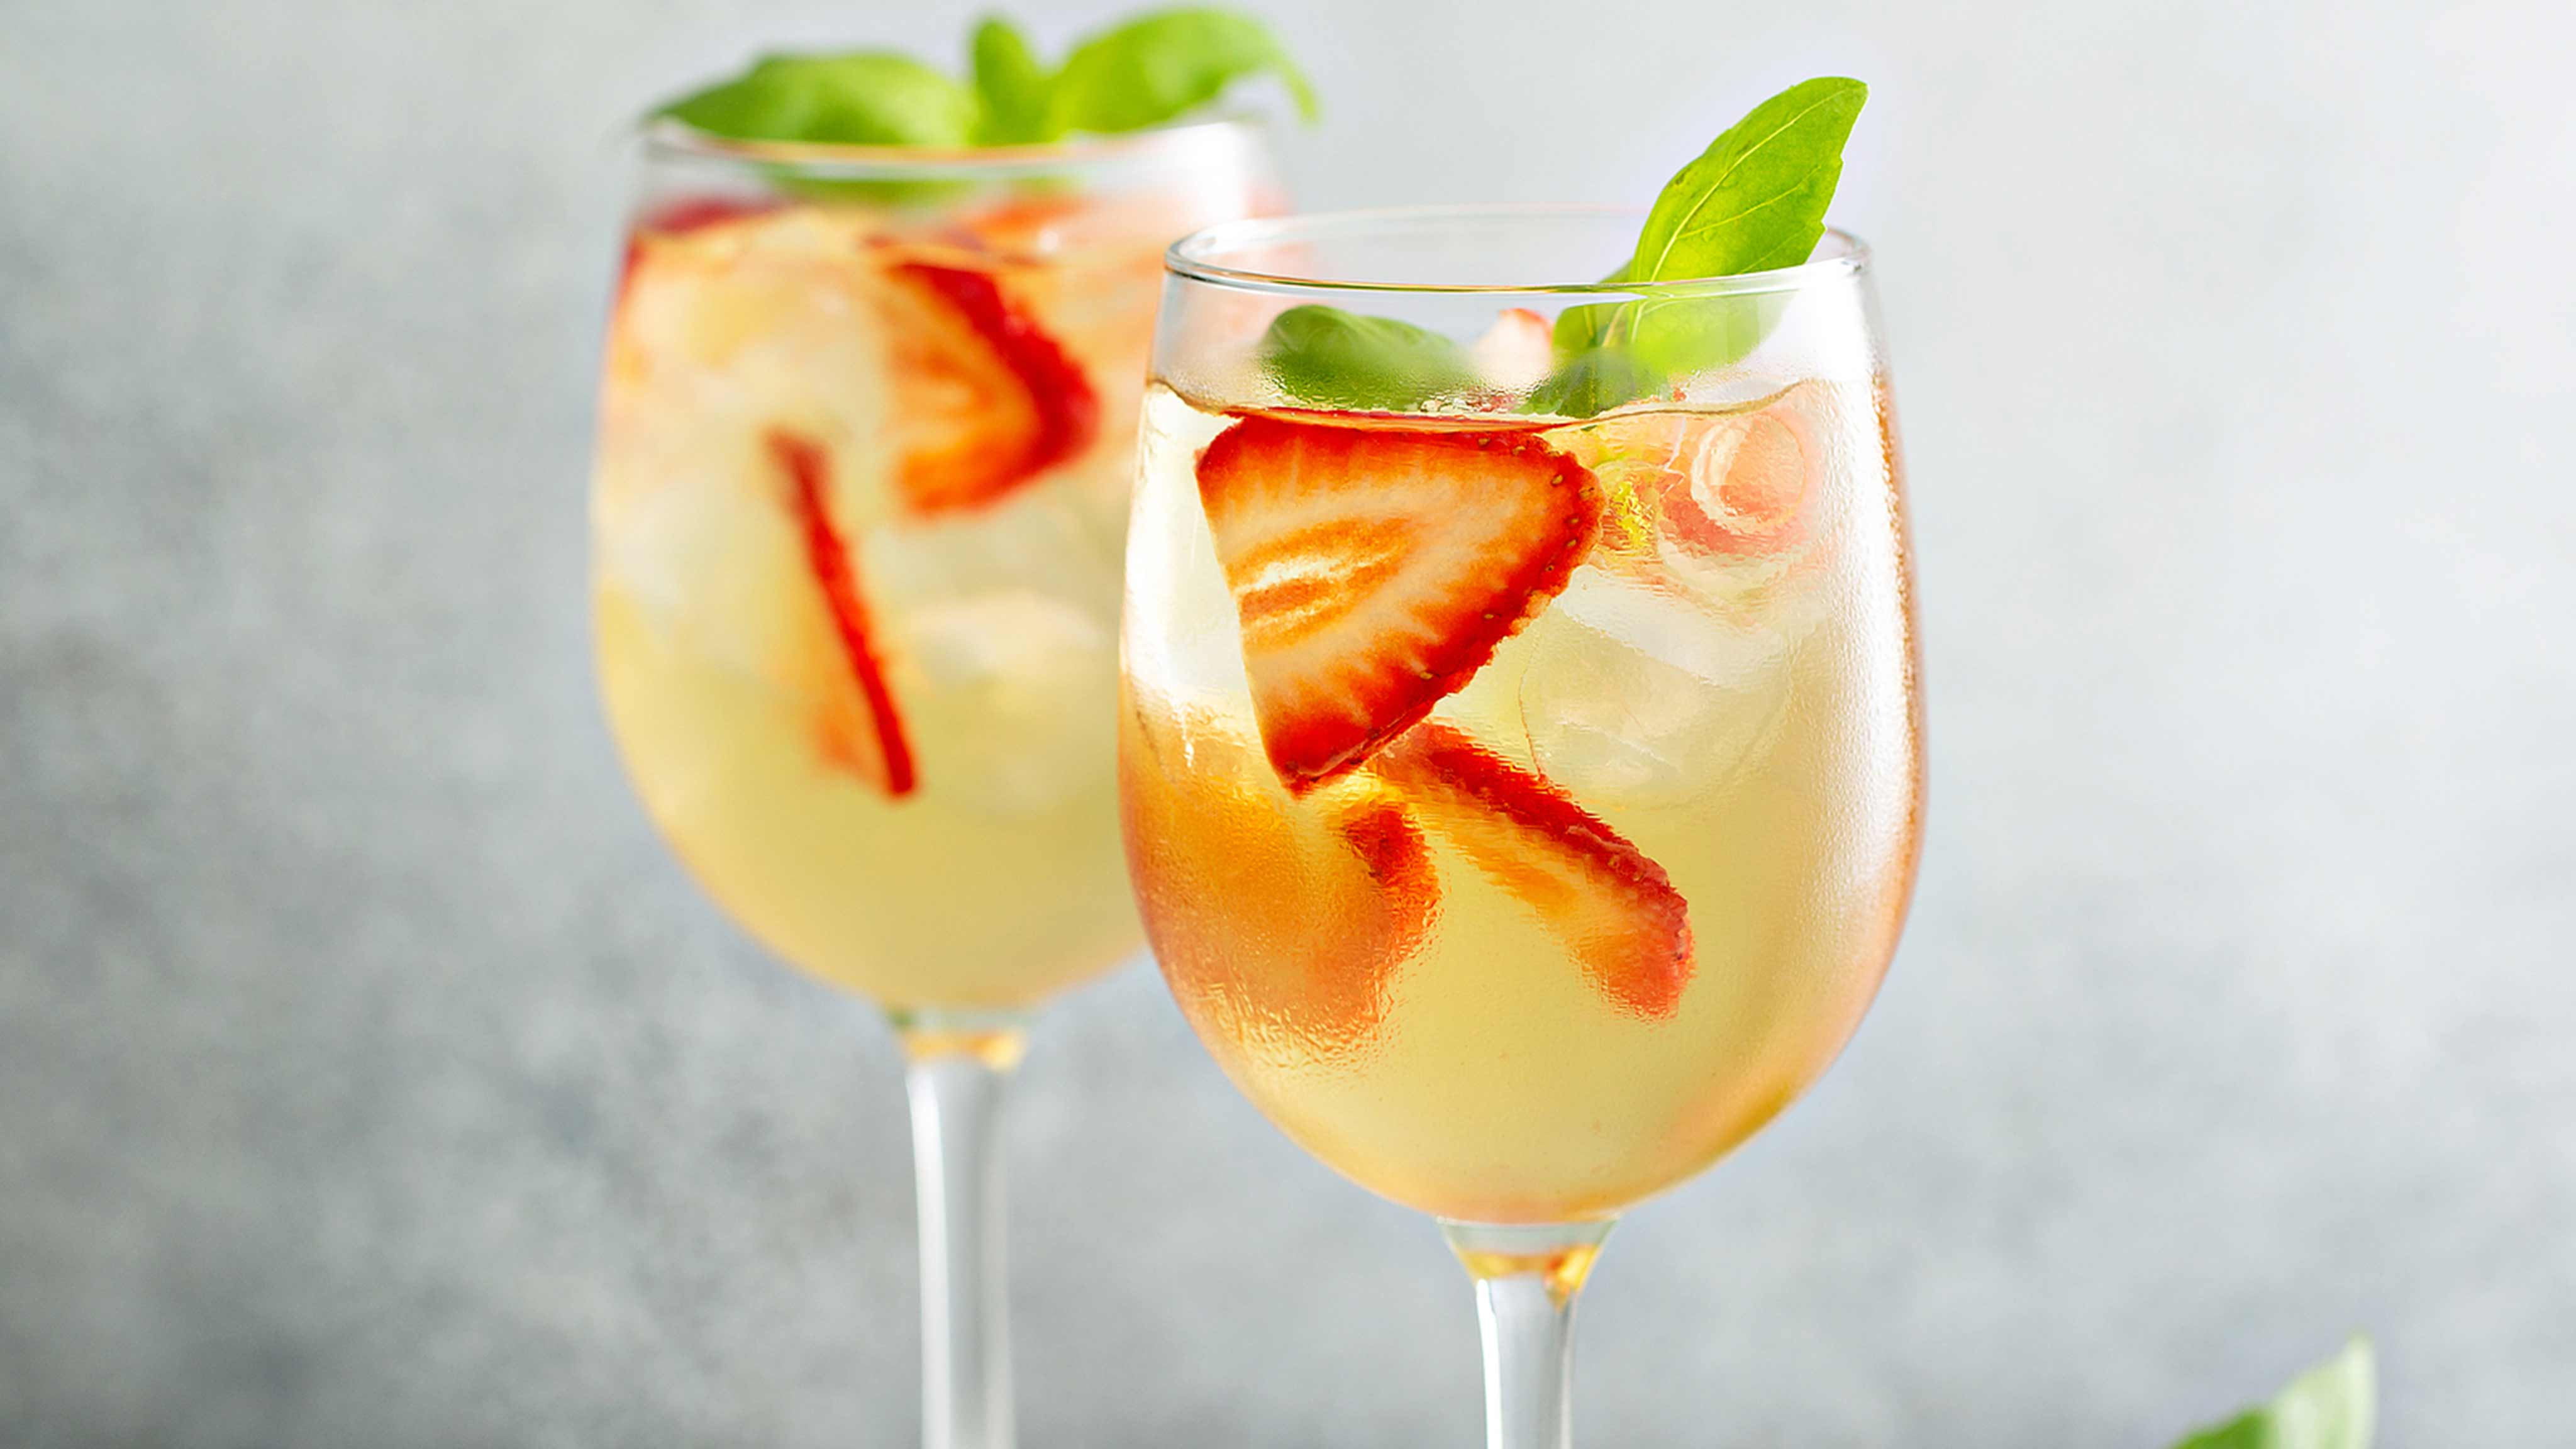 Image for Recipe Sparkling White Sangria with Strawberries and Basil